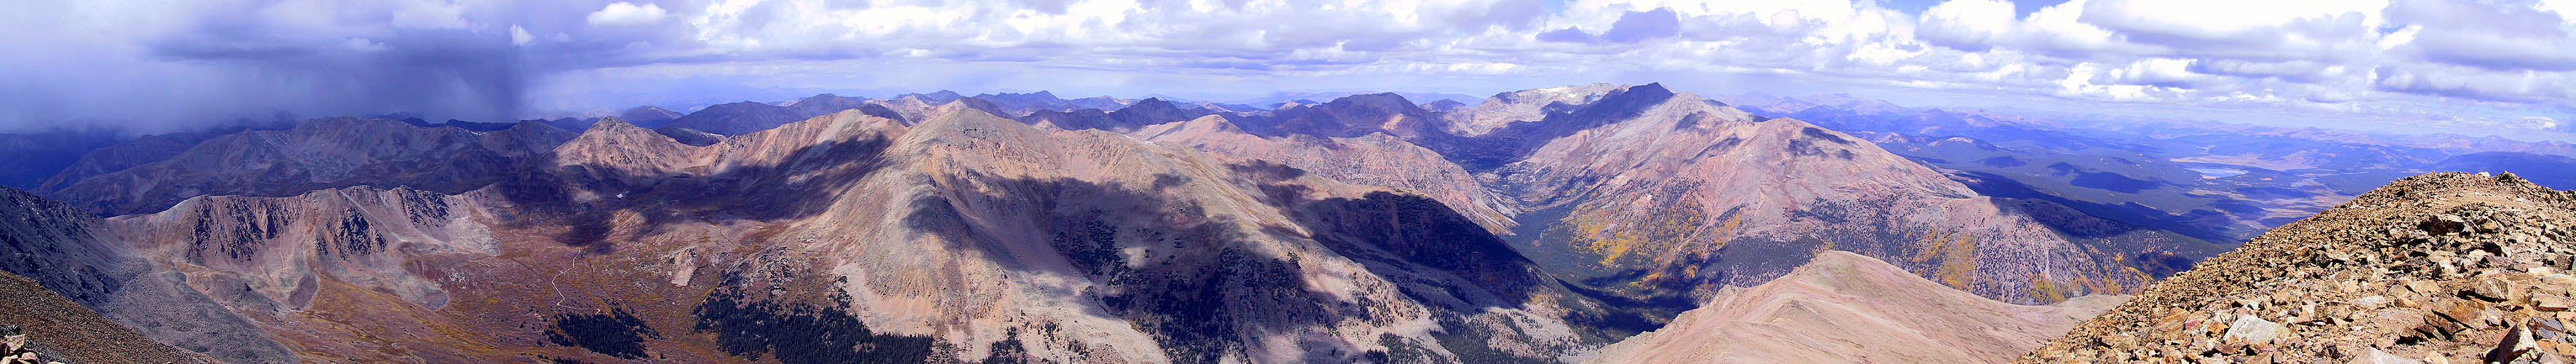 Mt Elbert 2001: Summit Panoramic North